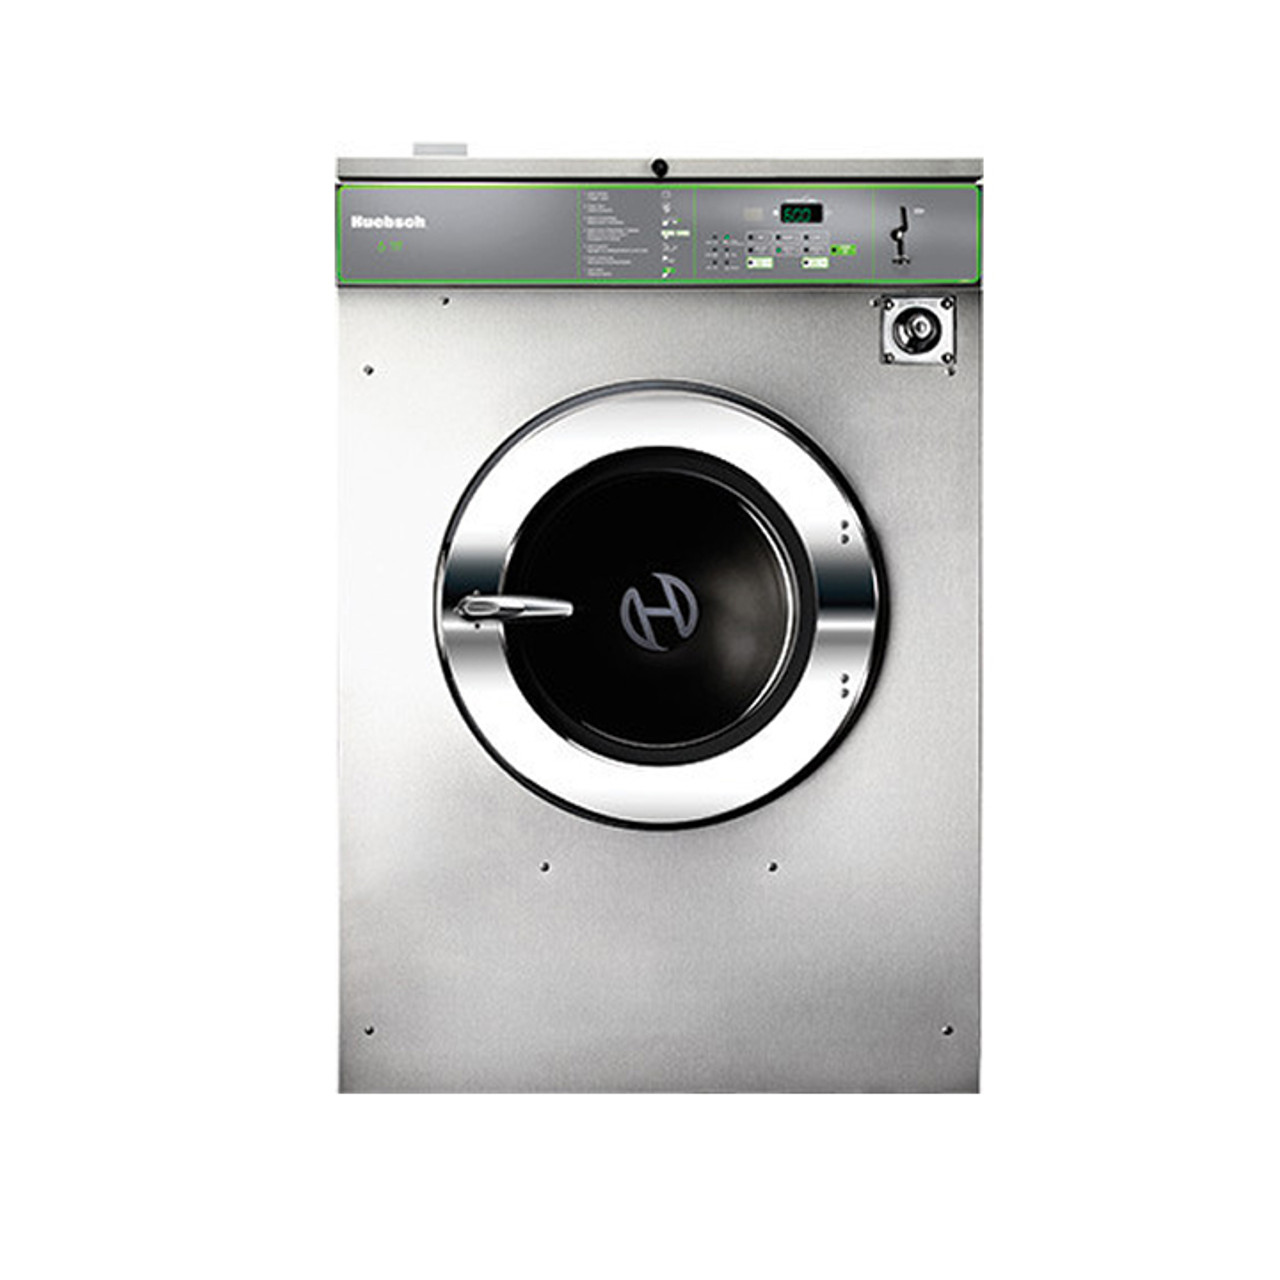 Huebsch Vended Galaxy Washer-Extractors